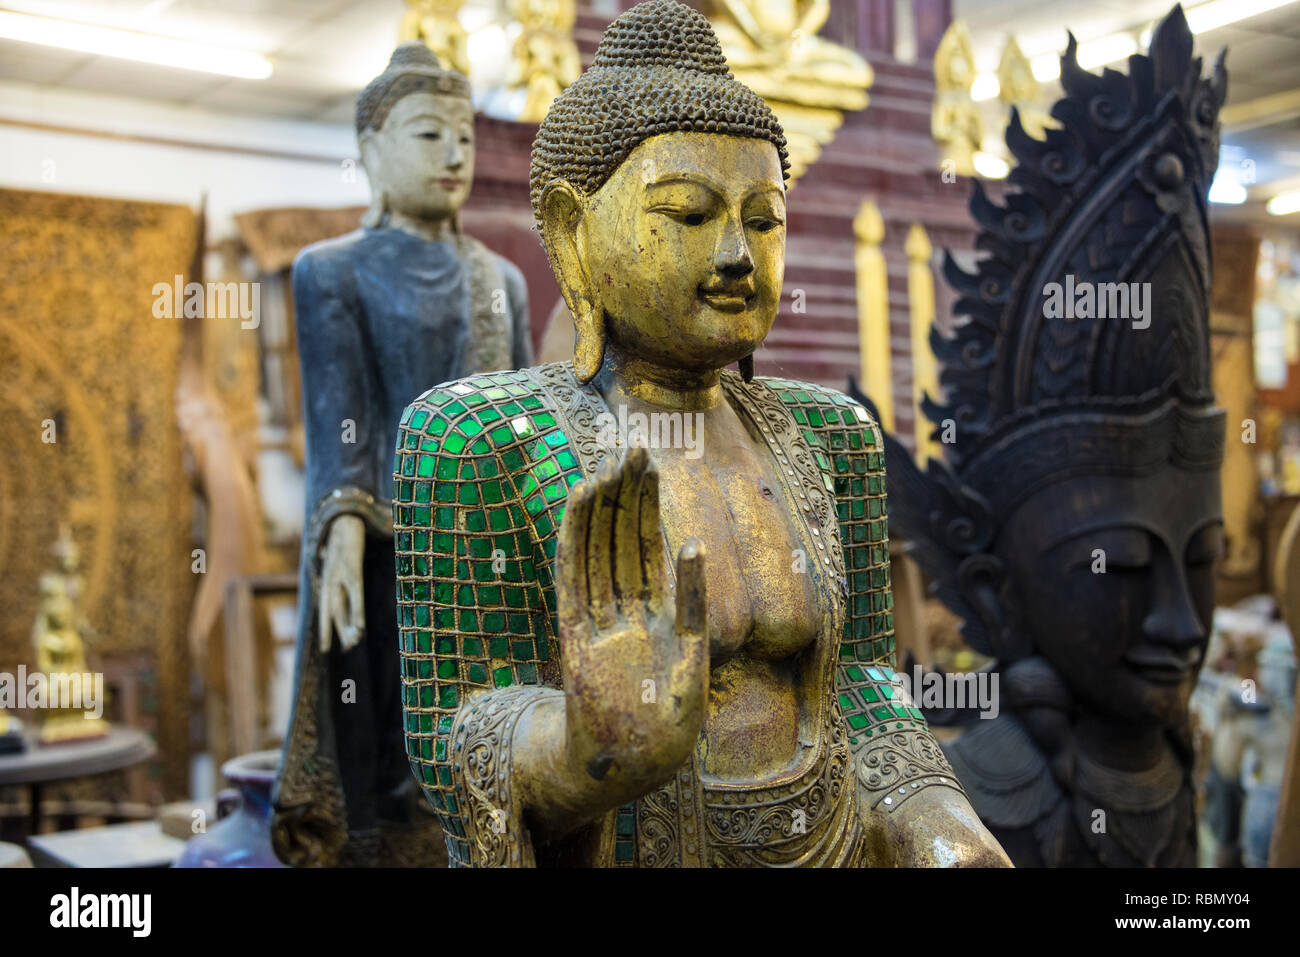 Buddha statue in antique shop in Patong Phuket Thailand. 15 December 2018 - Stock Image